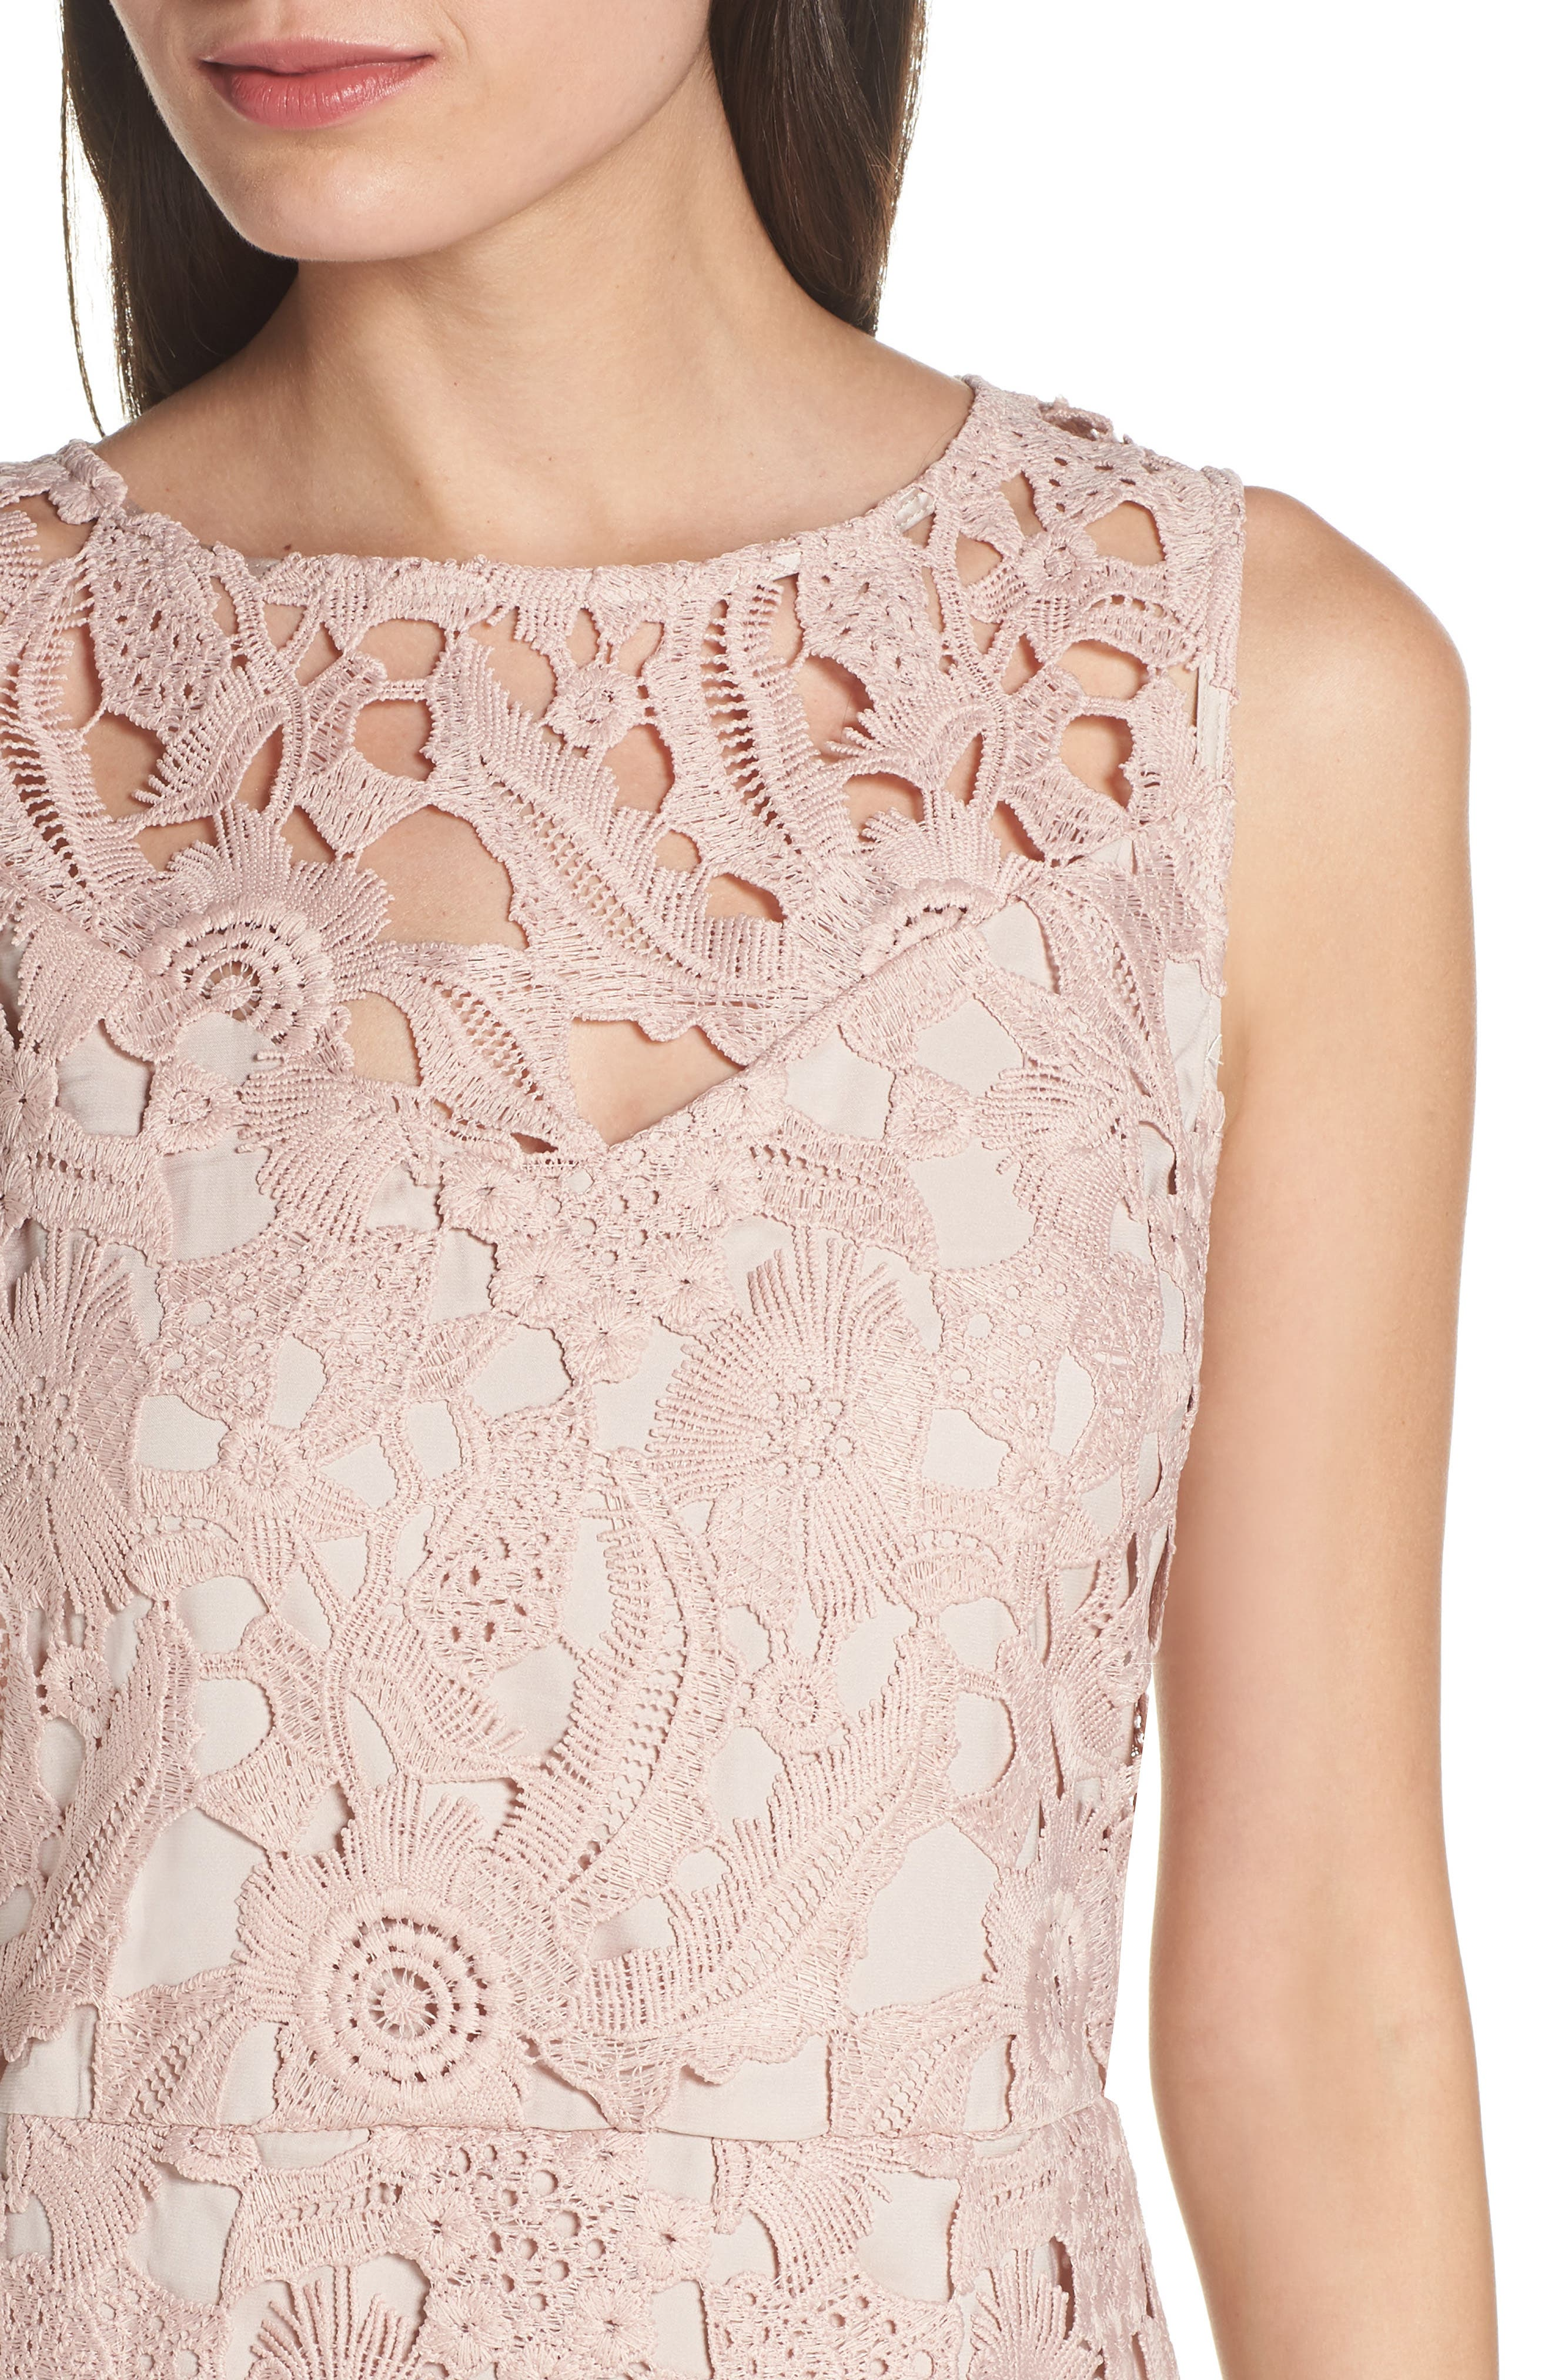 SAM EDELMAN, Lace Sheath Dress, Alternate thumbnail 5, color, BLUSH